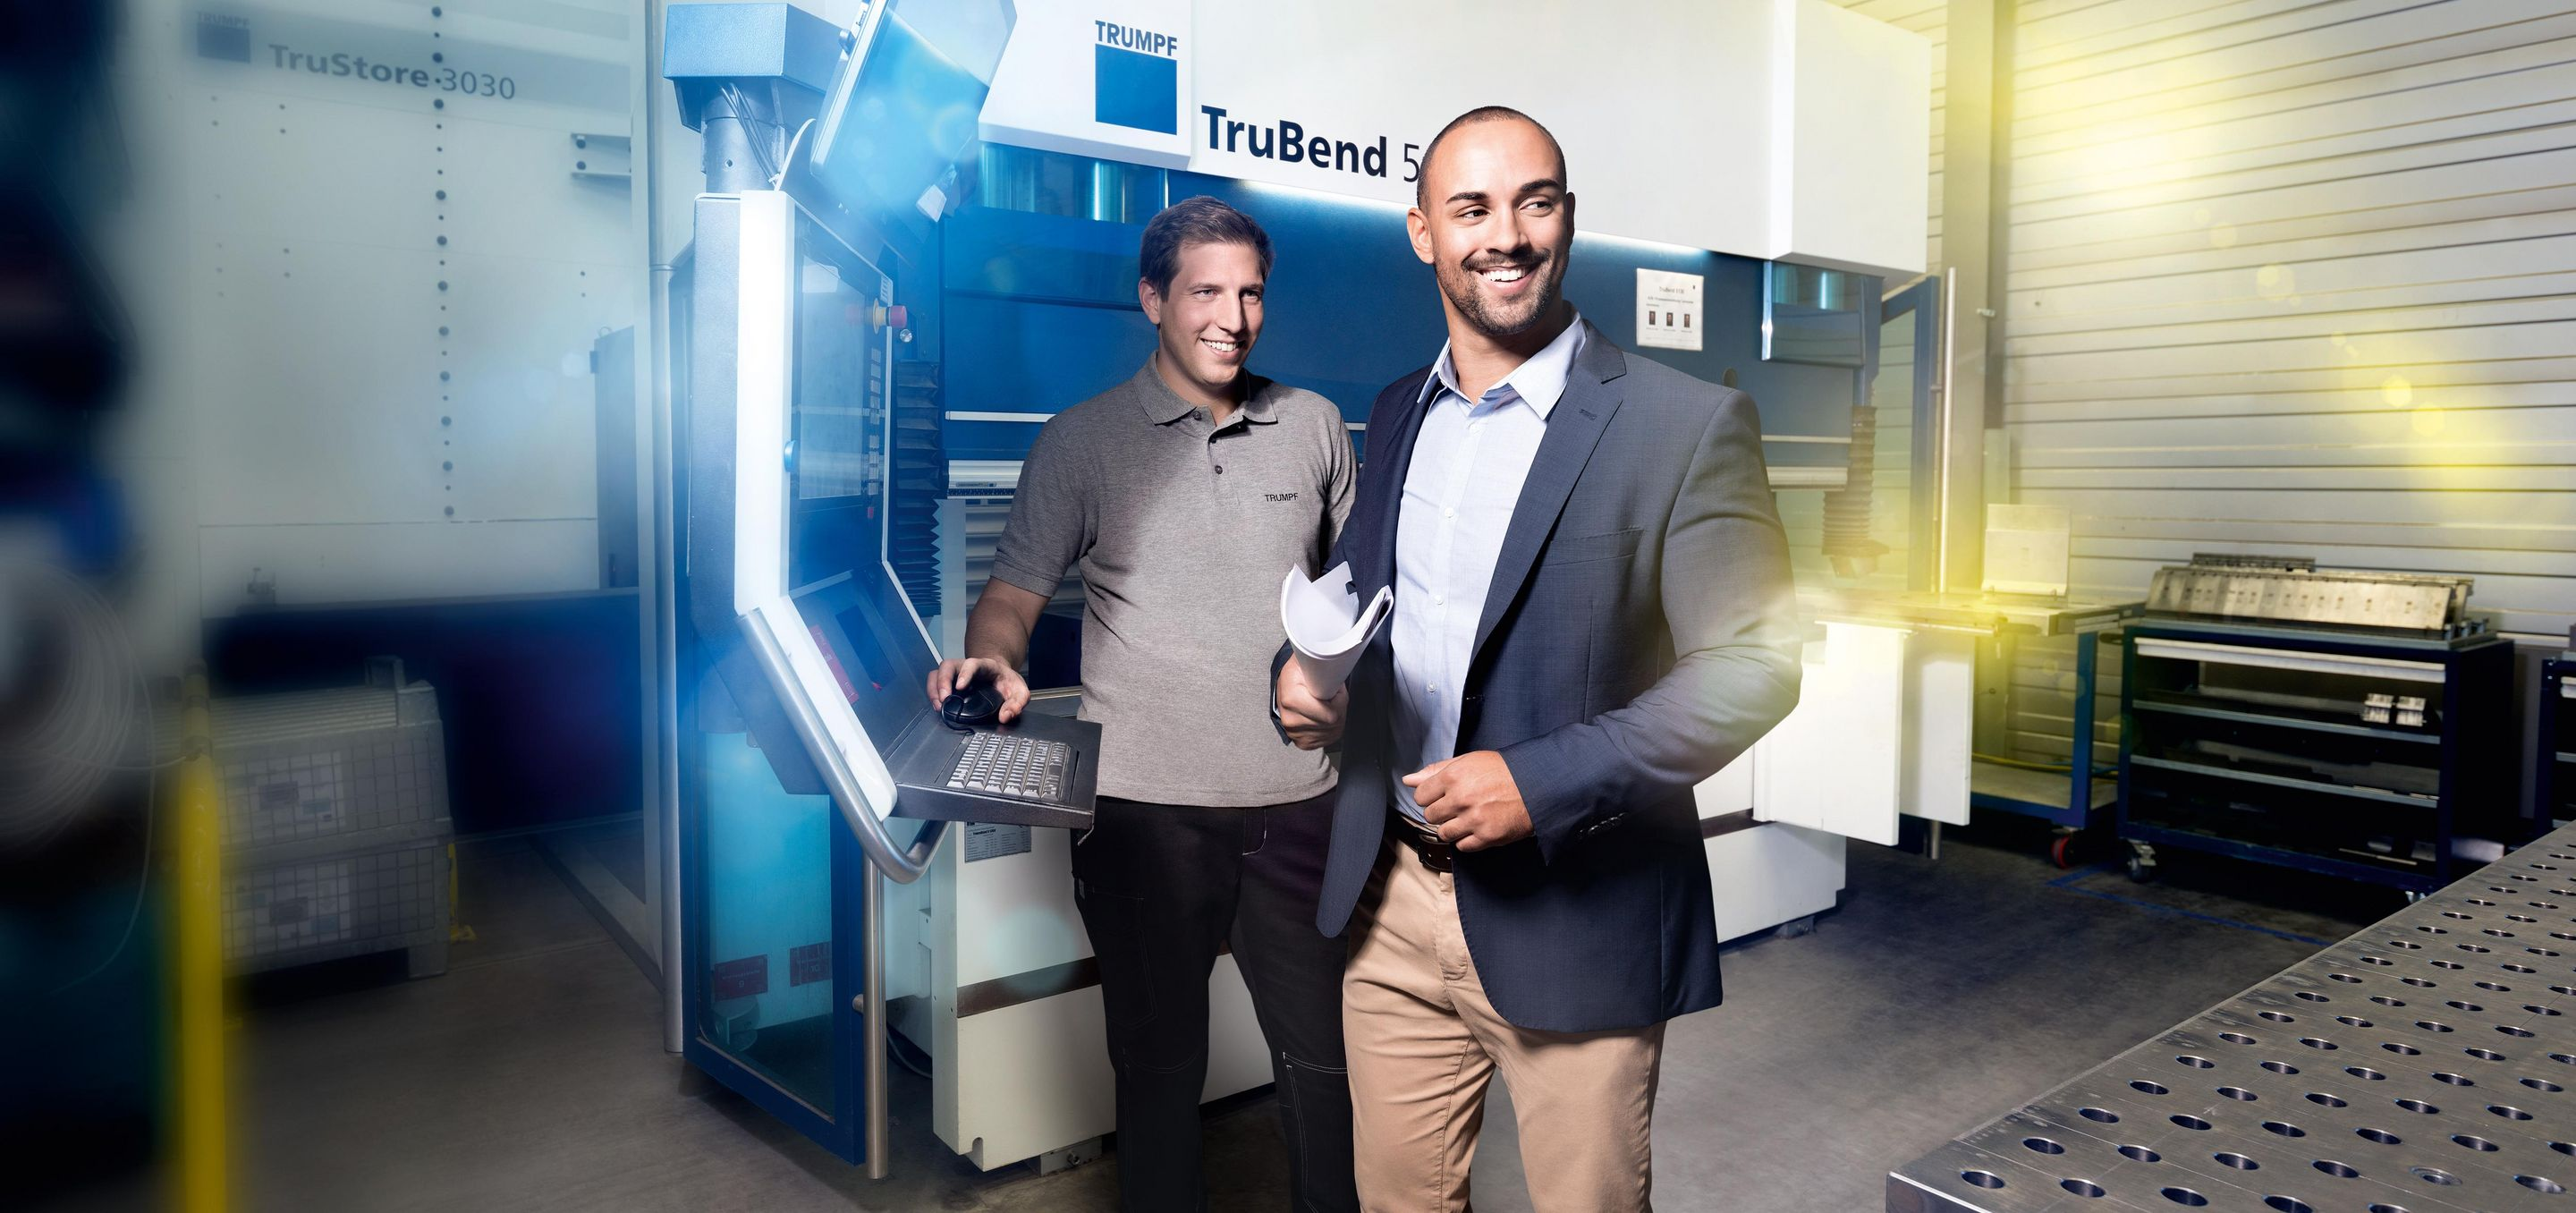 TRUMPF Services Pre-owned machines key visual